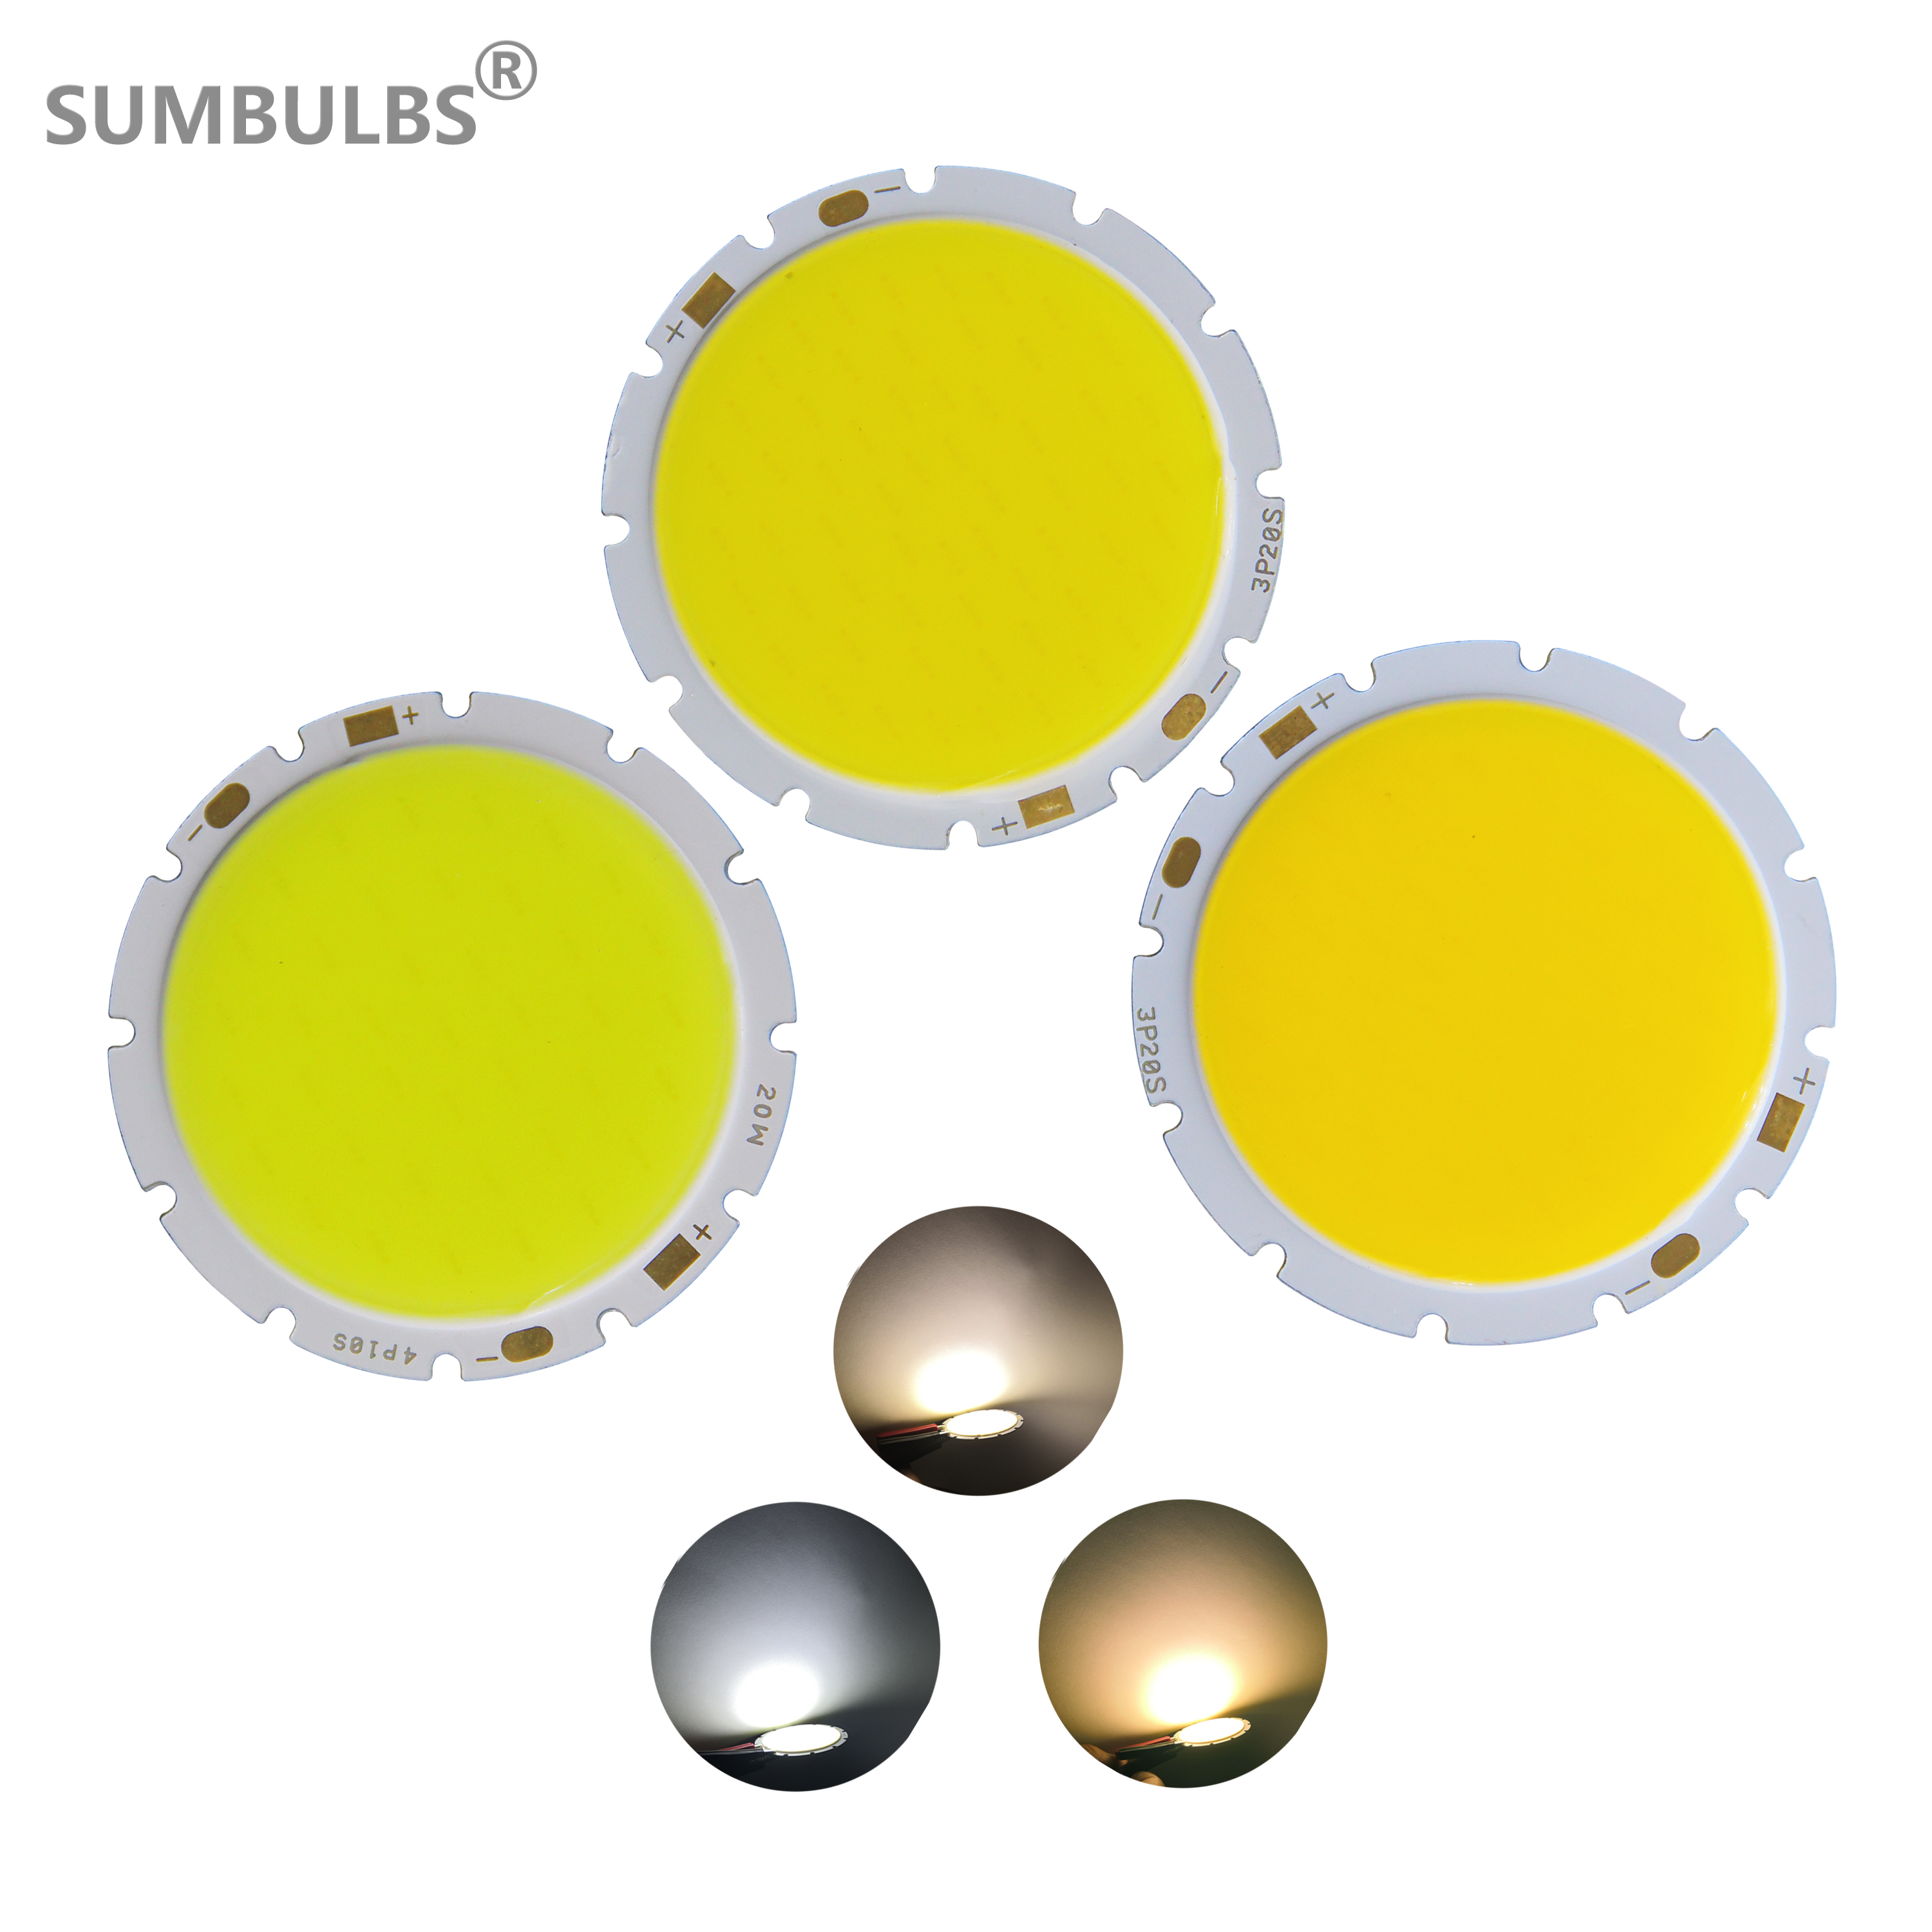 4942 Downlight Bulb LED COB Light Source 49mm Round 15W 20W 30W Chip On Board LED Warm Nature Cold White For Diy Lamp